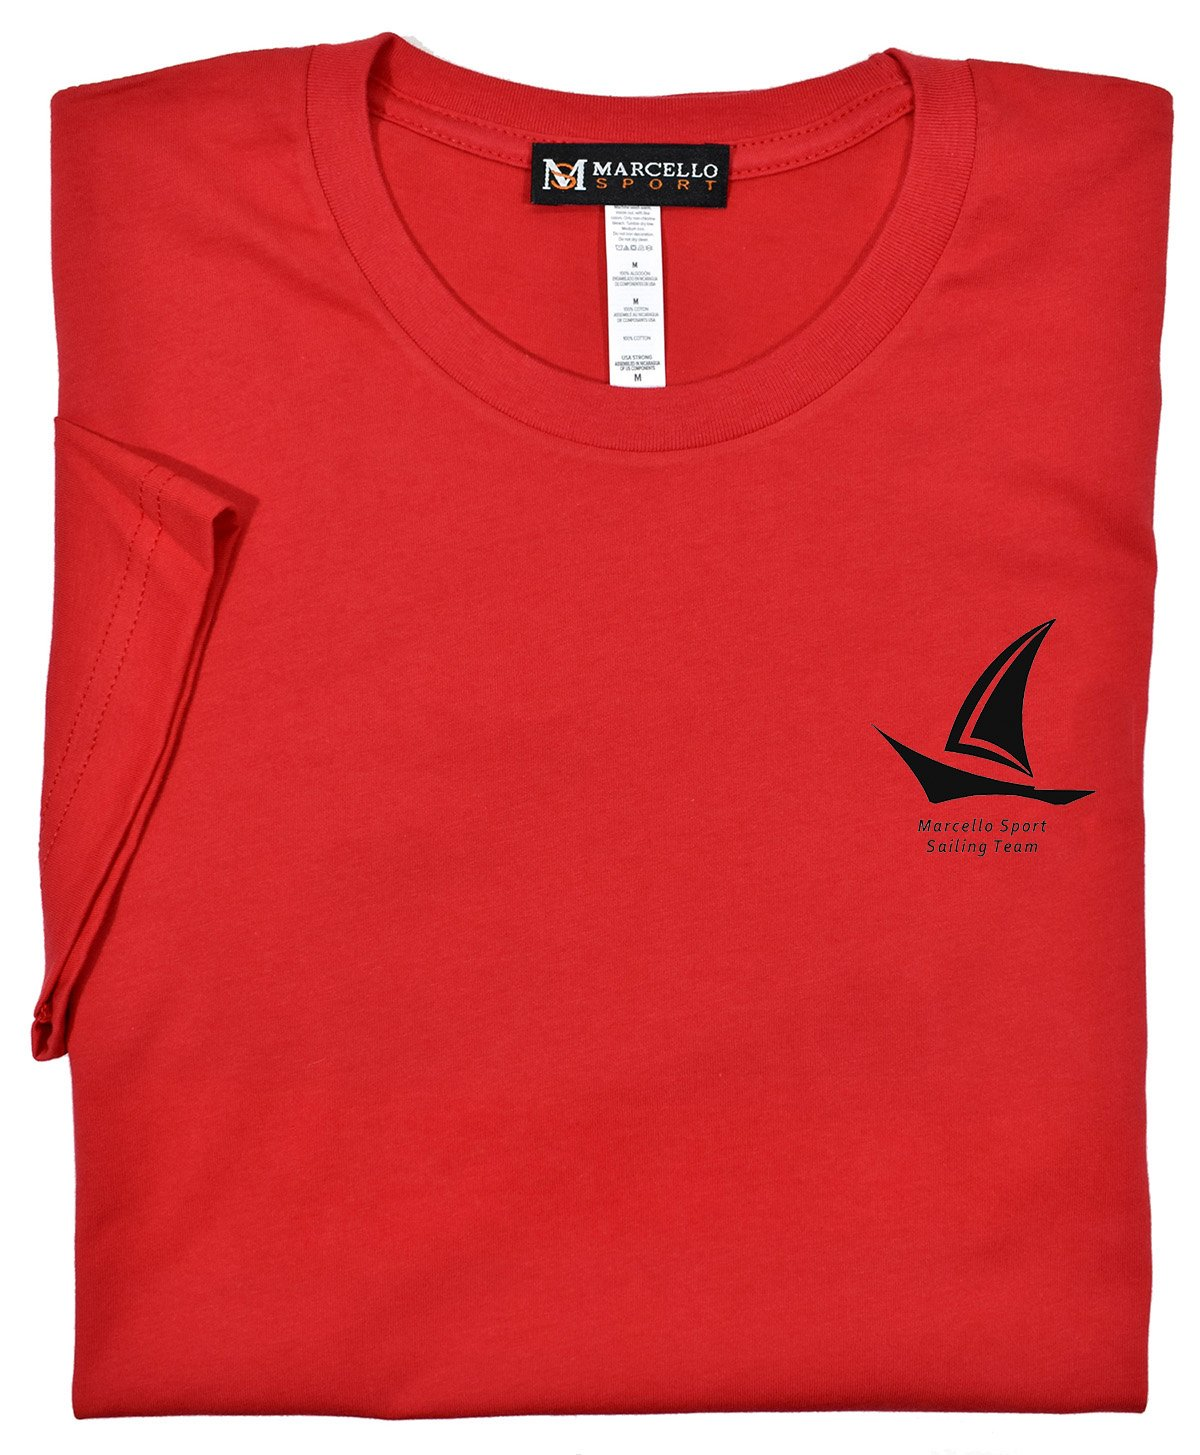 T003 Marcello Sail Tee - Marcello Sport